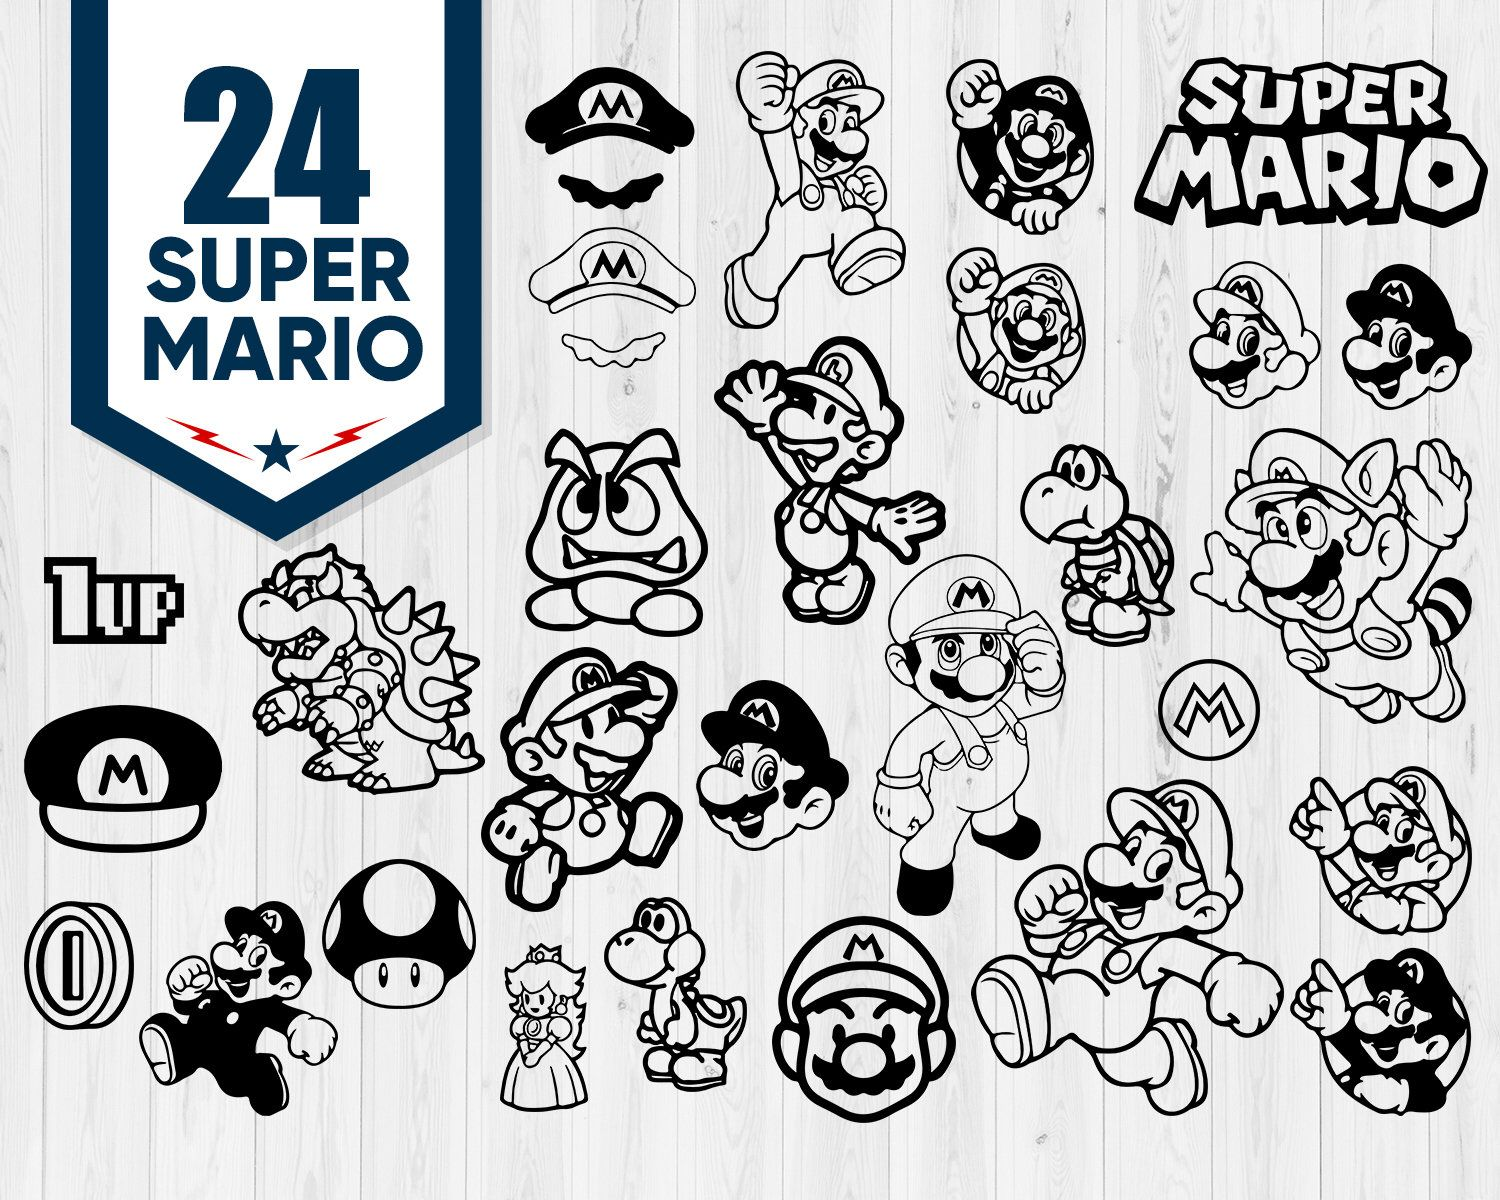 Super Mario Svg Mario Svg Super Mario Clipart Yoshi Svg Super Mario Bros Svg Luigi Svg Mario Clipart Ma Video Game Room Design Super Mario Etsy Download